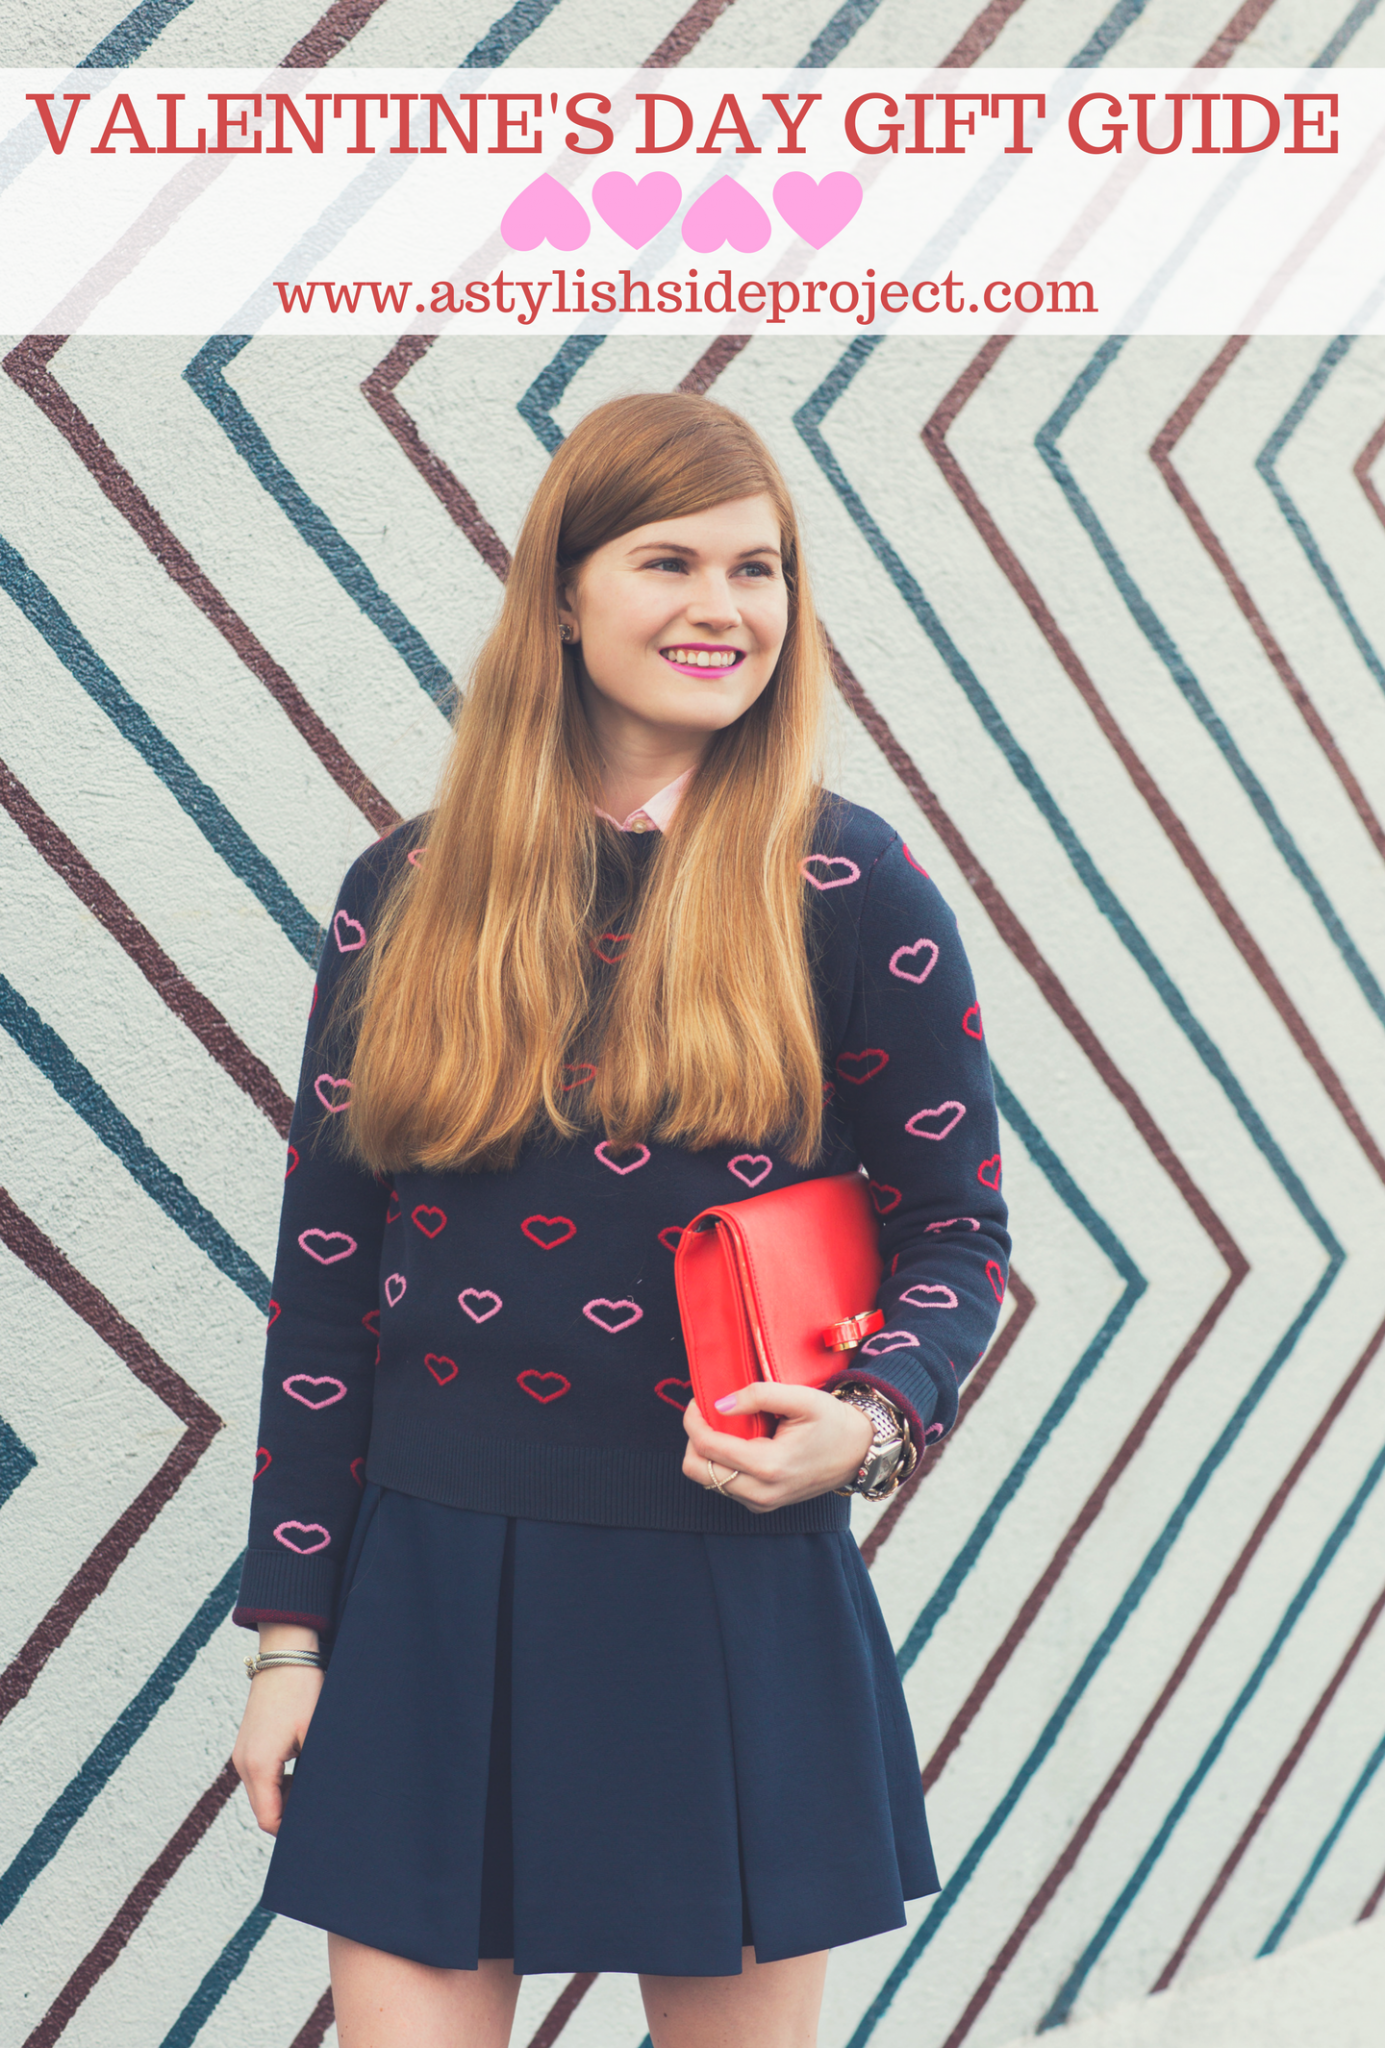 Lifestyle blogger Mollie Sheperdson shares her Valentine's Day gift guide